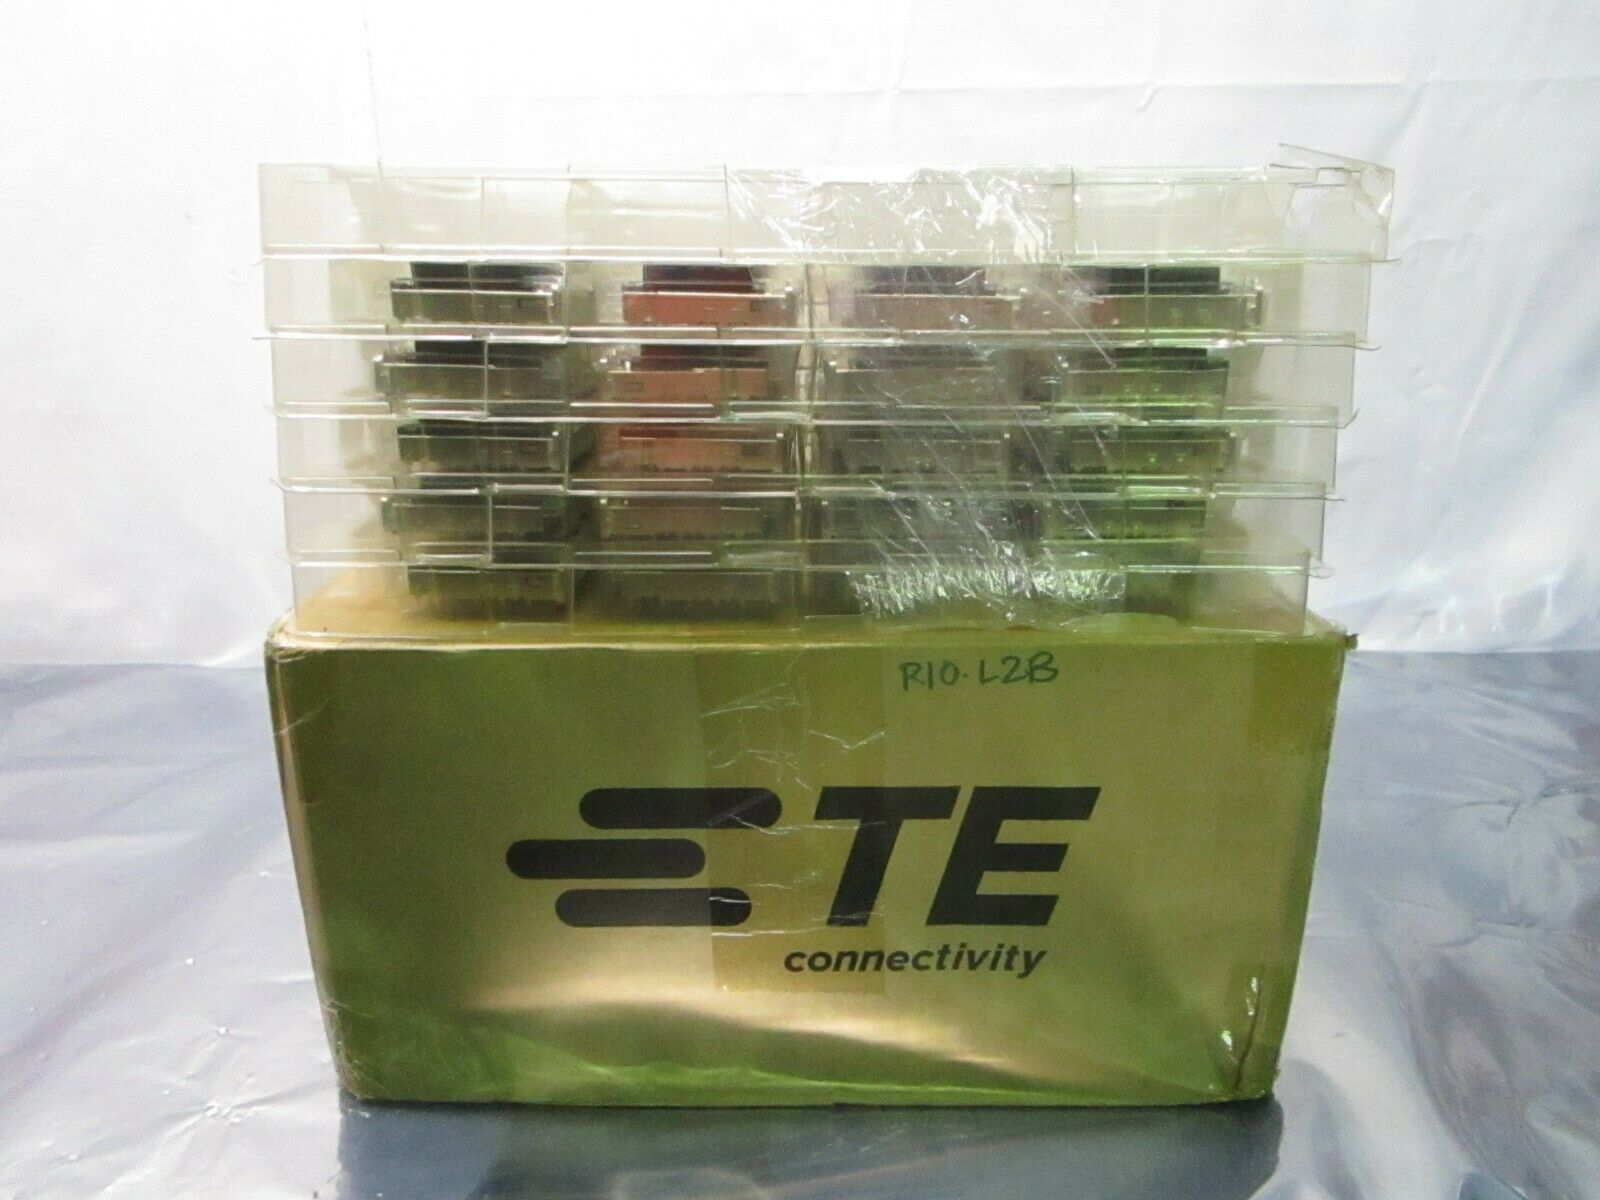 1 Lot of 40 TE connectivity AMP Brand 2170551-1 1X6 CAGE ASSEMBLY, 102424